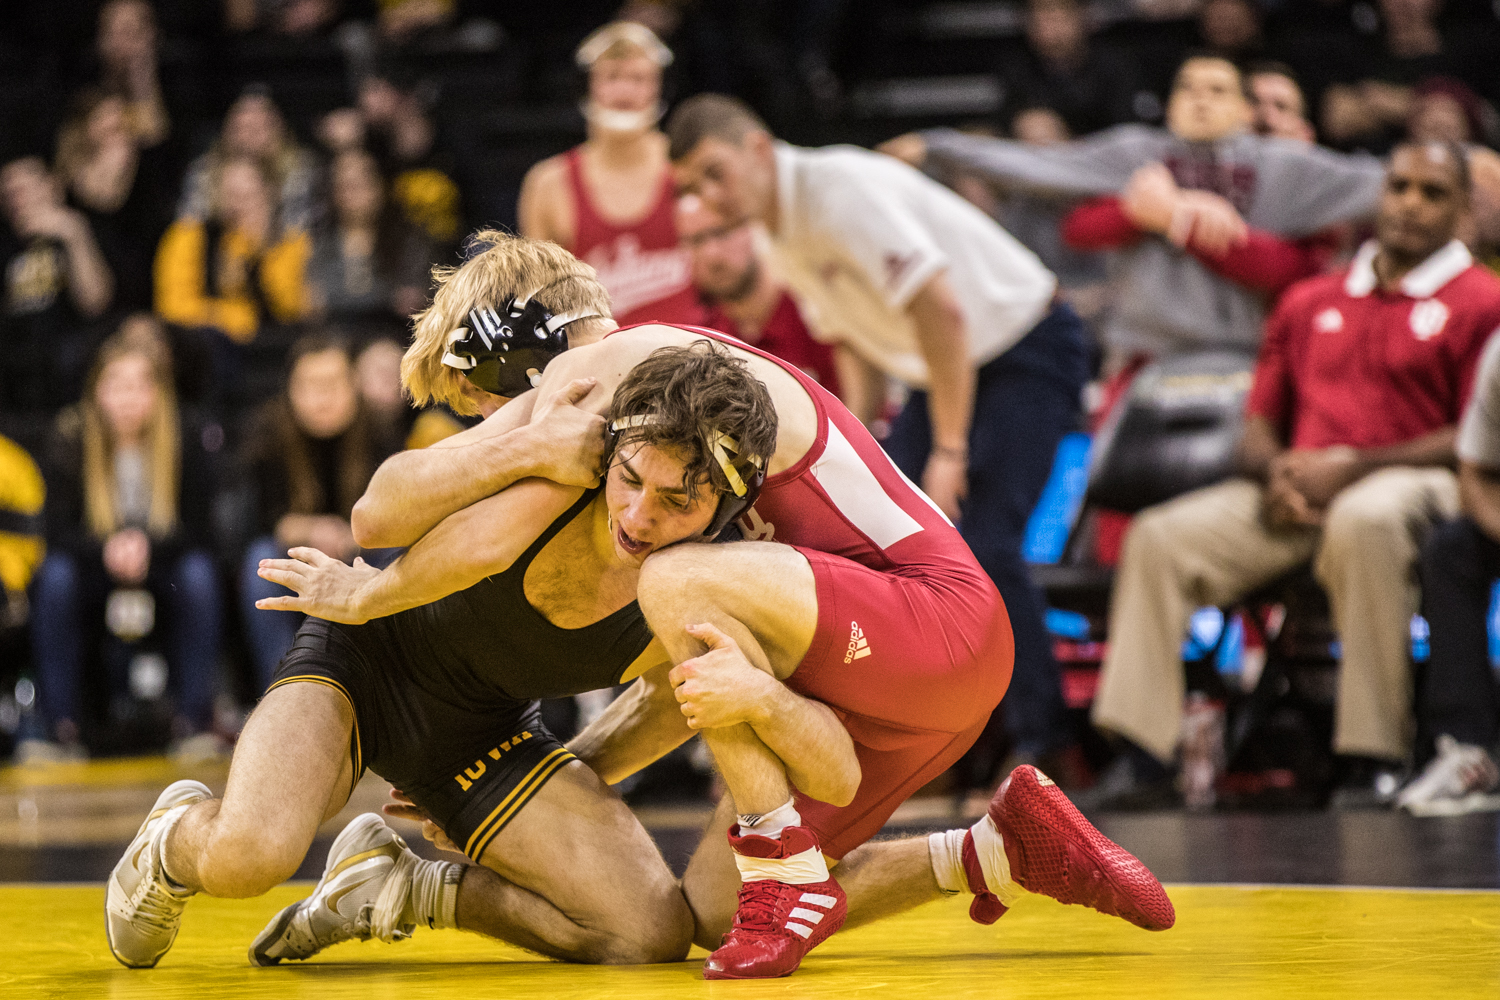 Iowa's No. 3 Austin DeSanto wrestles Indiana's Paul Konrath at 133lb during a wrestling match between Iowa and Indiana at Carver-Hawkeye Arena on Friday, February 15, 2019. The Hawkeyes, celebrating senior night, defeated the Hoosiers 37-9.